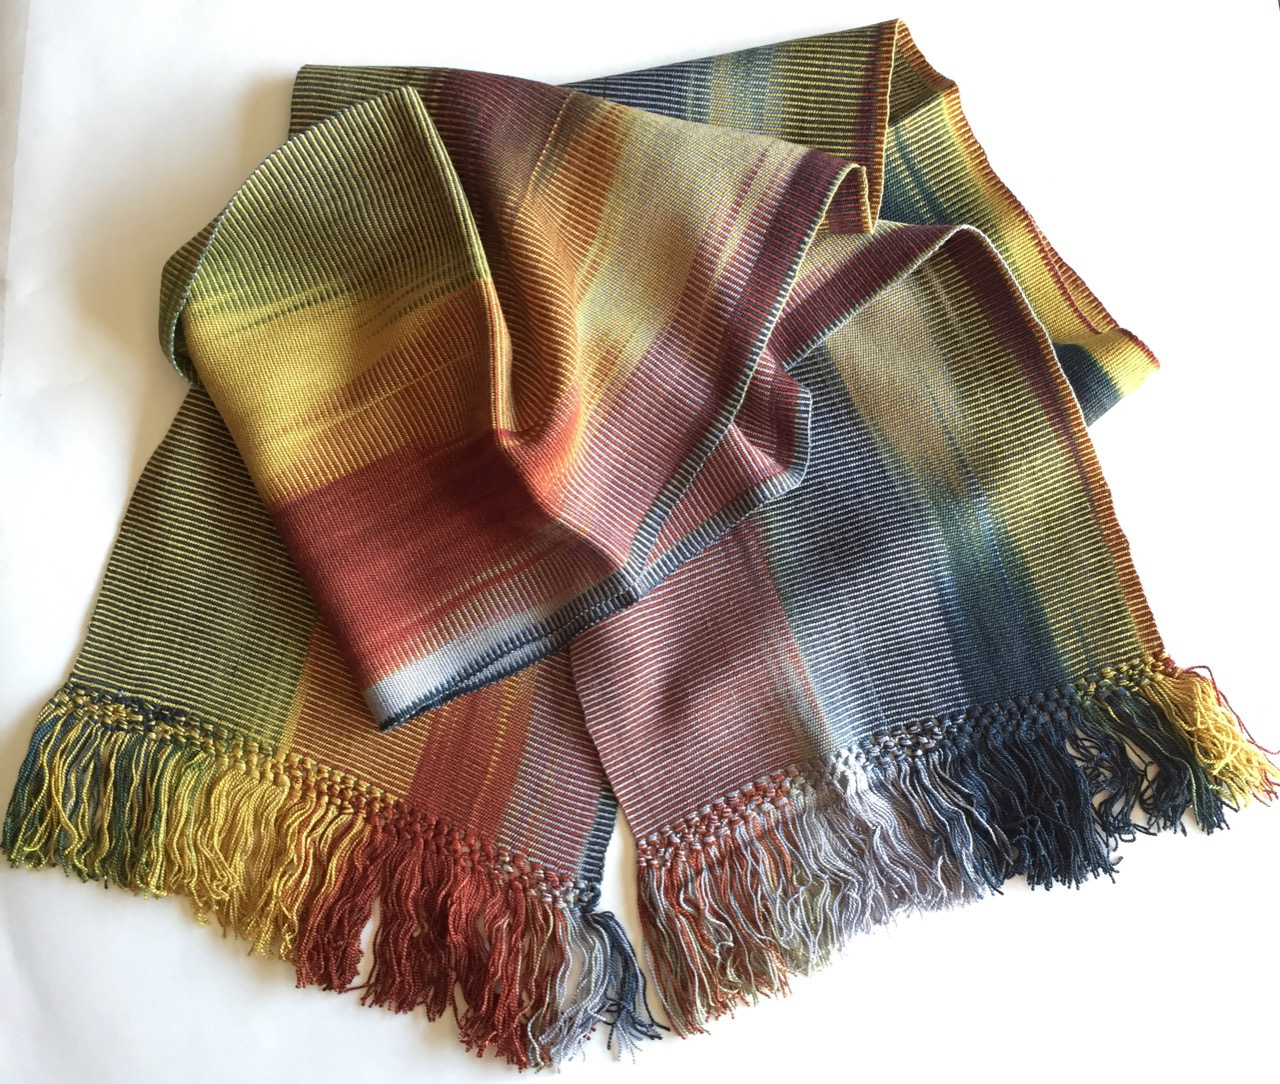 Gold, Burgundy, Black, White, Gray - Lightweight Bamboo Handwoven Scarf 8 x 68